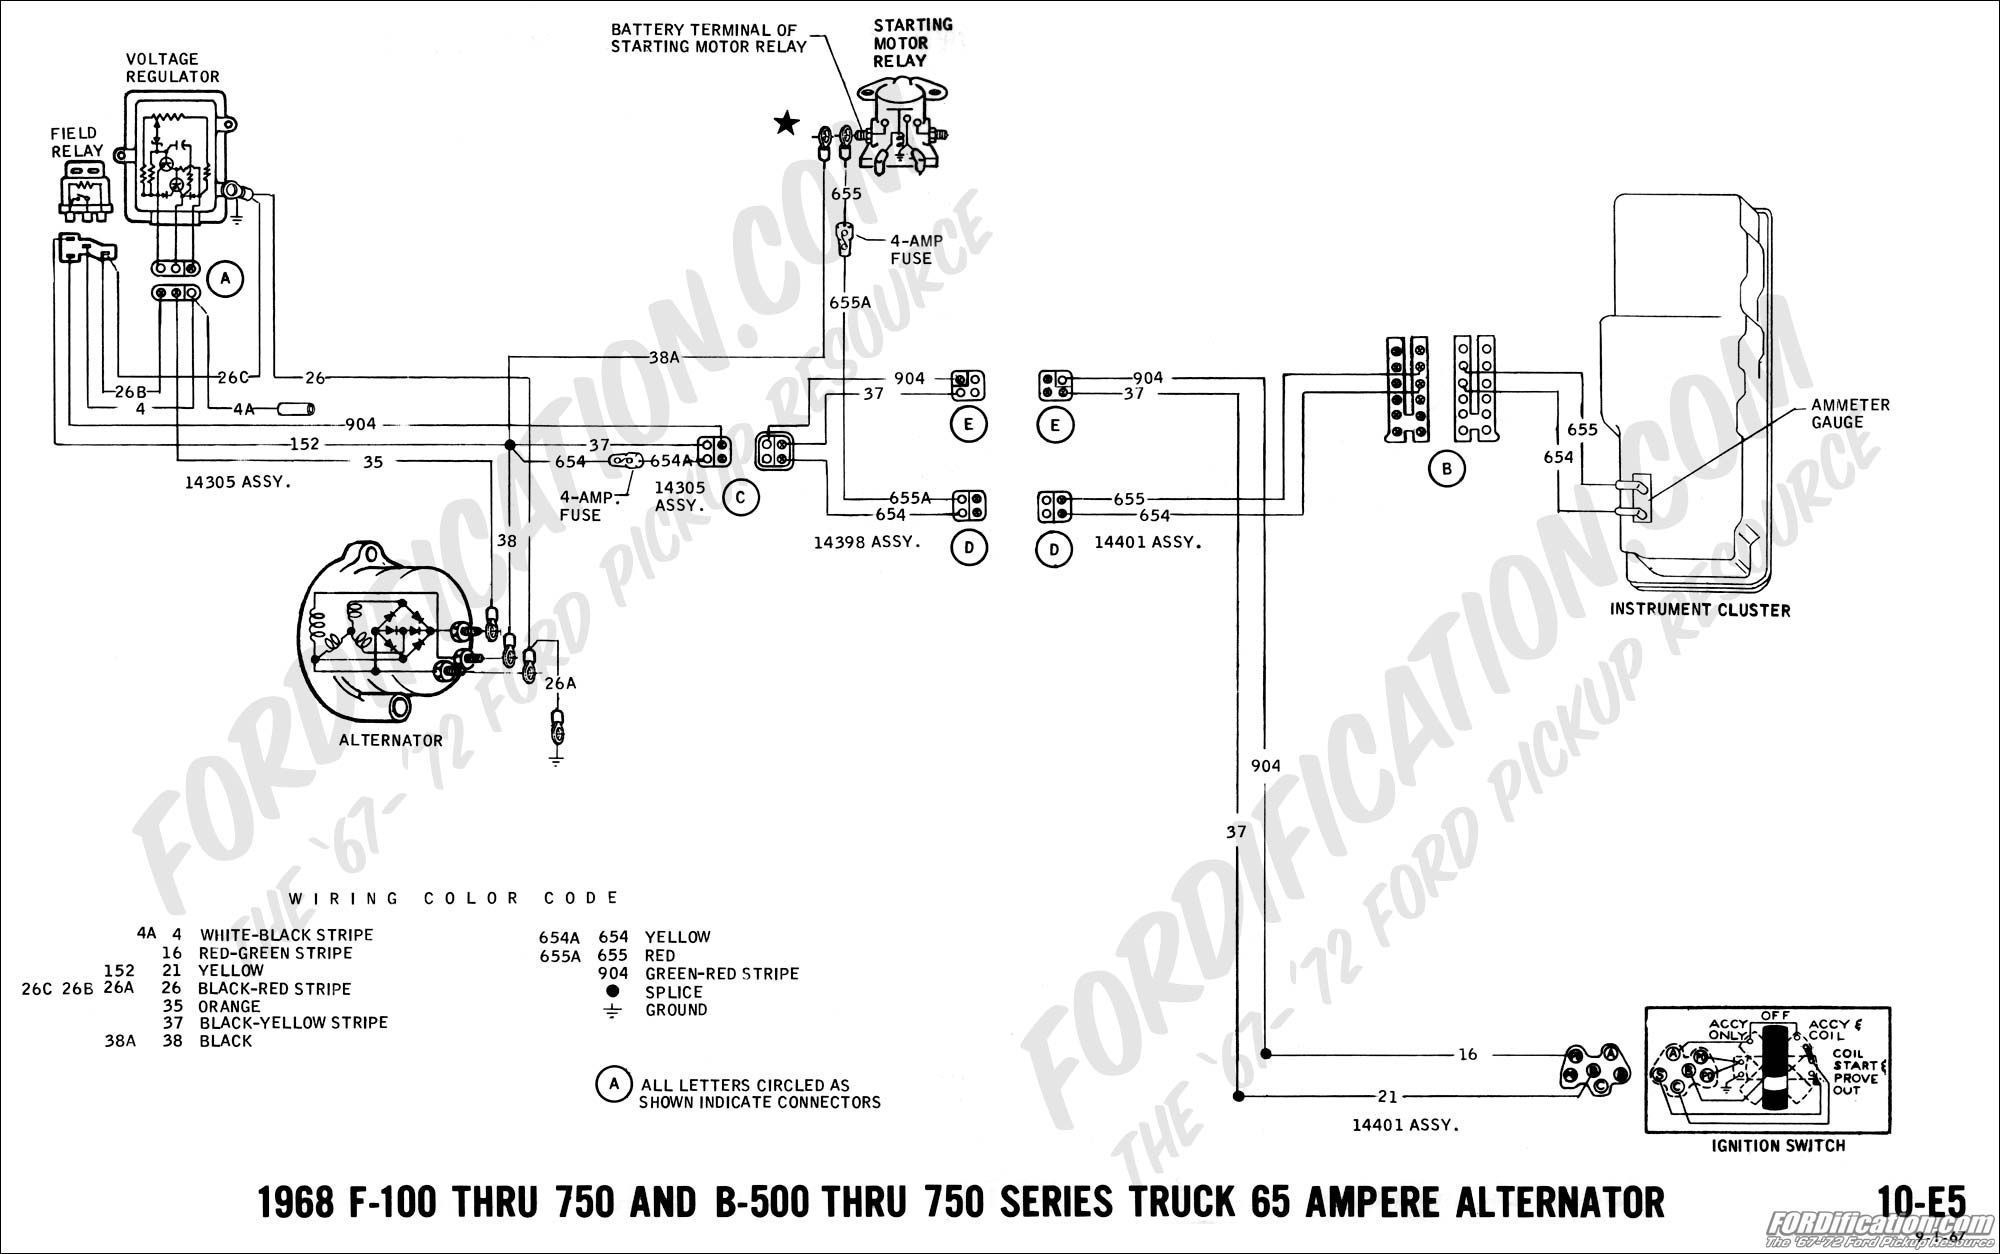 ford alternator wiring diagram internal regulator Download-Wiring Diagram For Ford Alternator With Internal Regulator 2018 Wiring Diagram For Alternator With Internal Regulator New Tractor 13-j